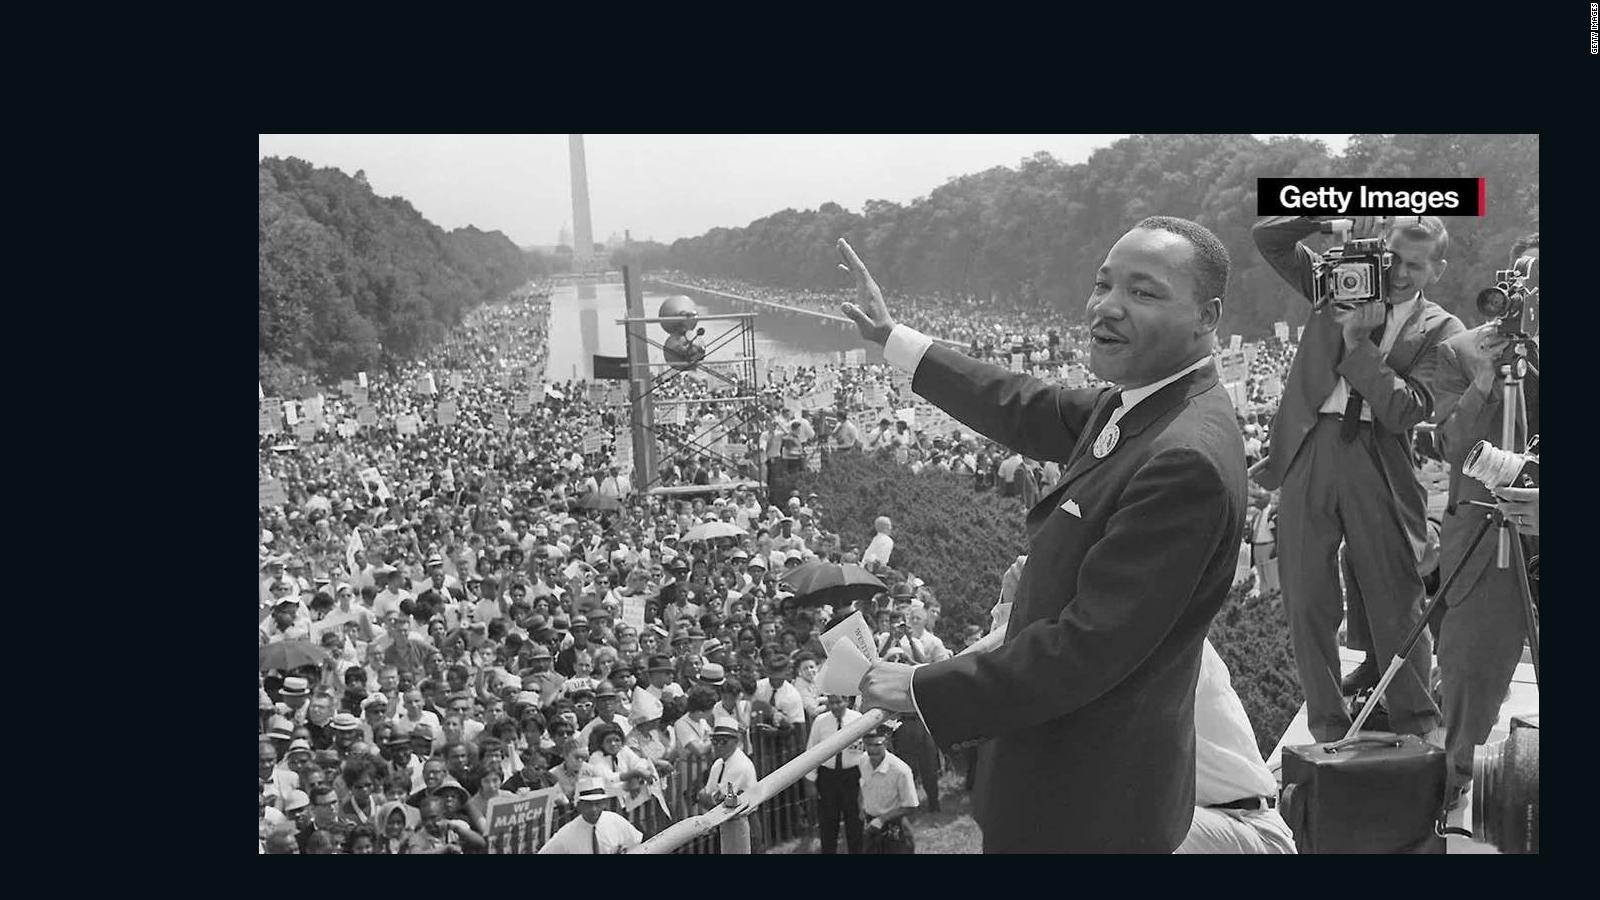 I Have a Dream': 9 historical facts about MLK's speech and